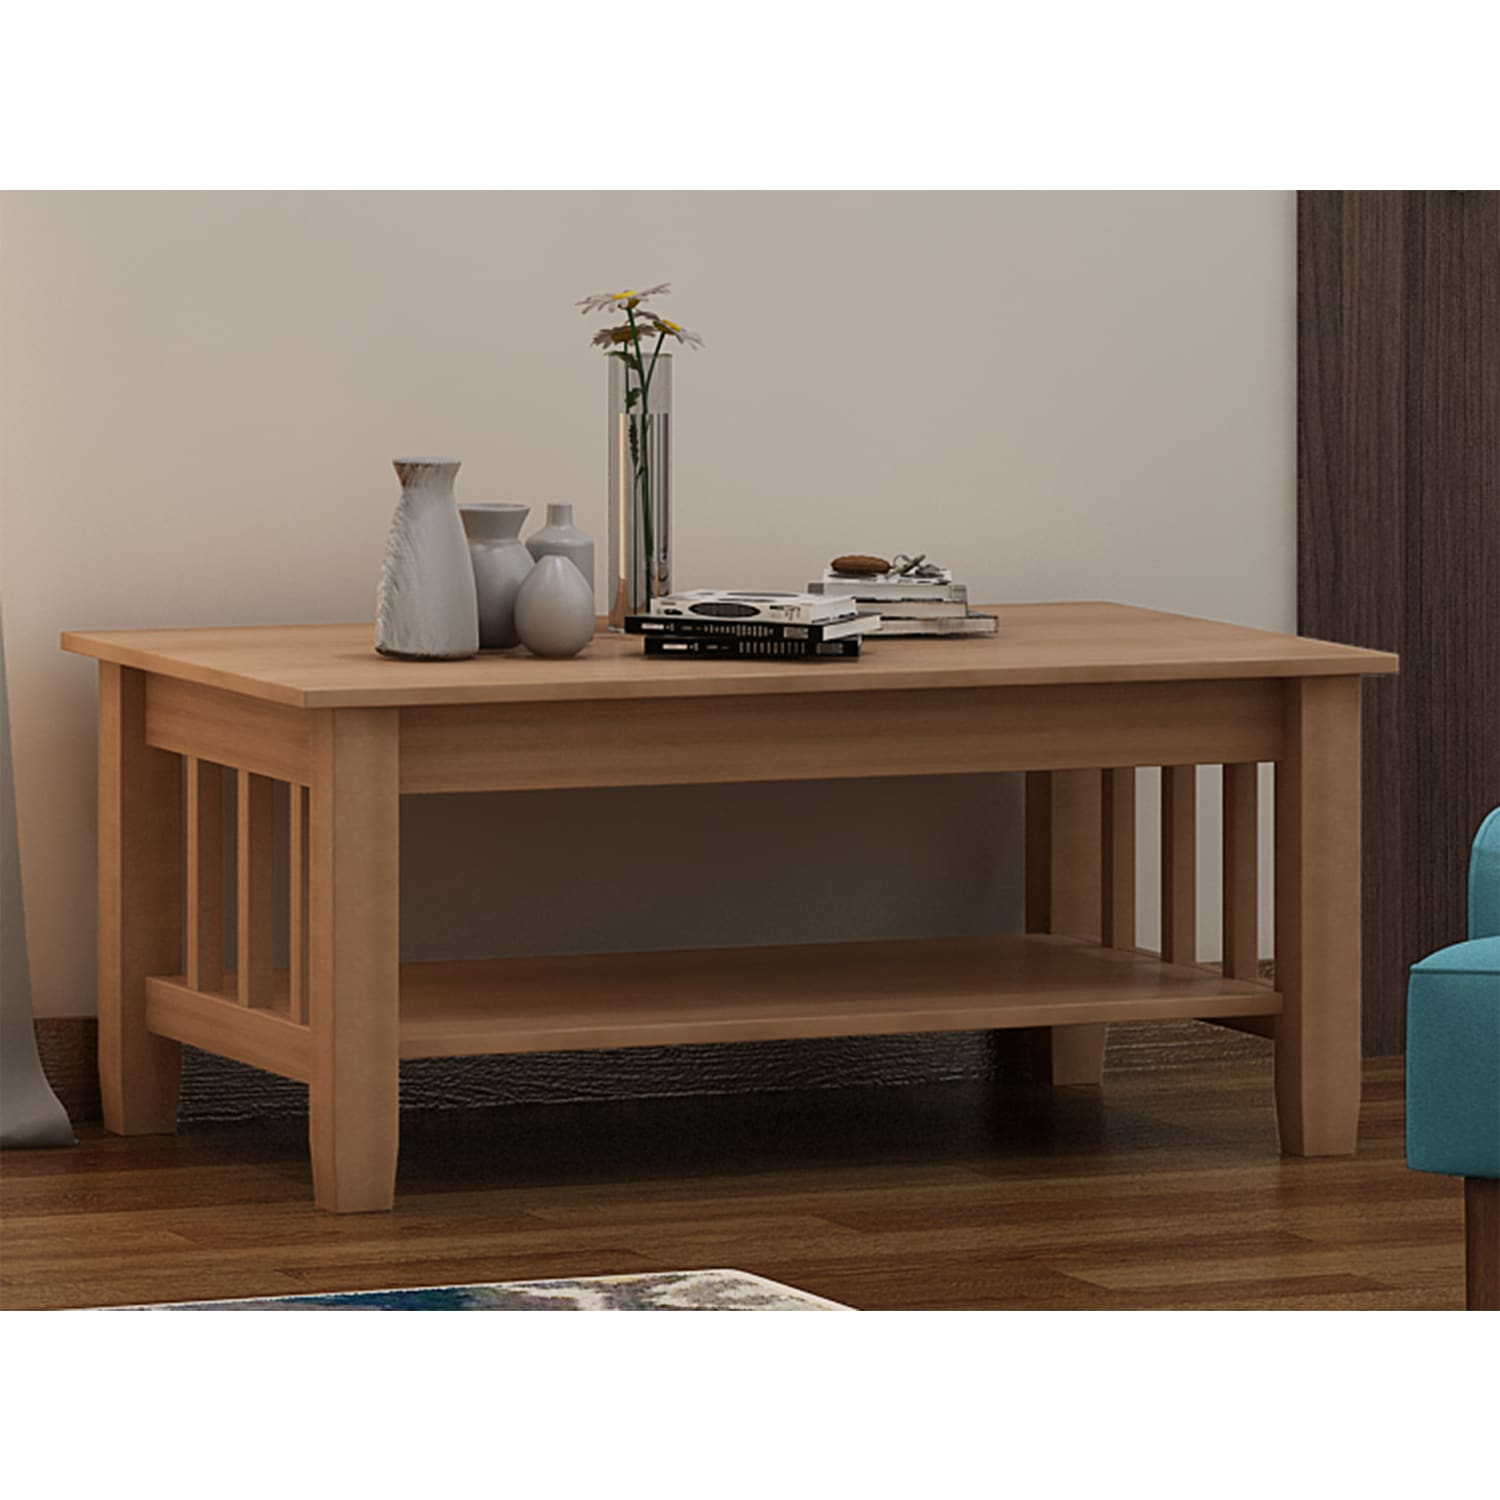 Unfinished Solid Parawood Mission Tall Lift top Coffee Table